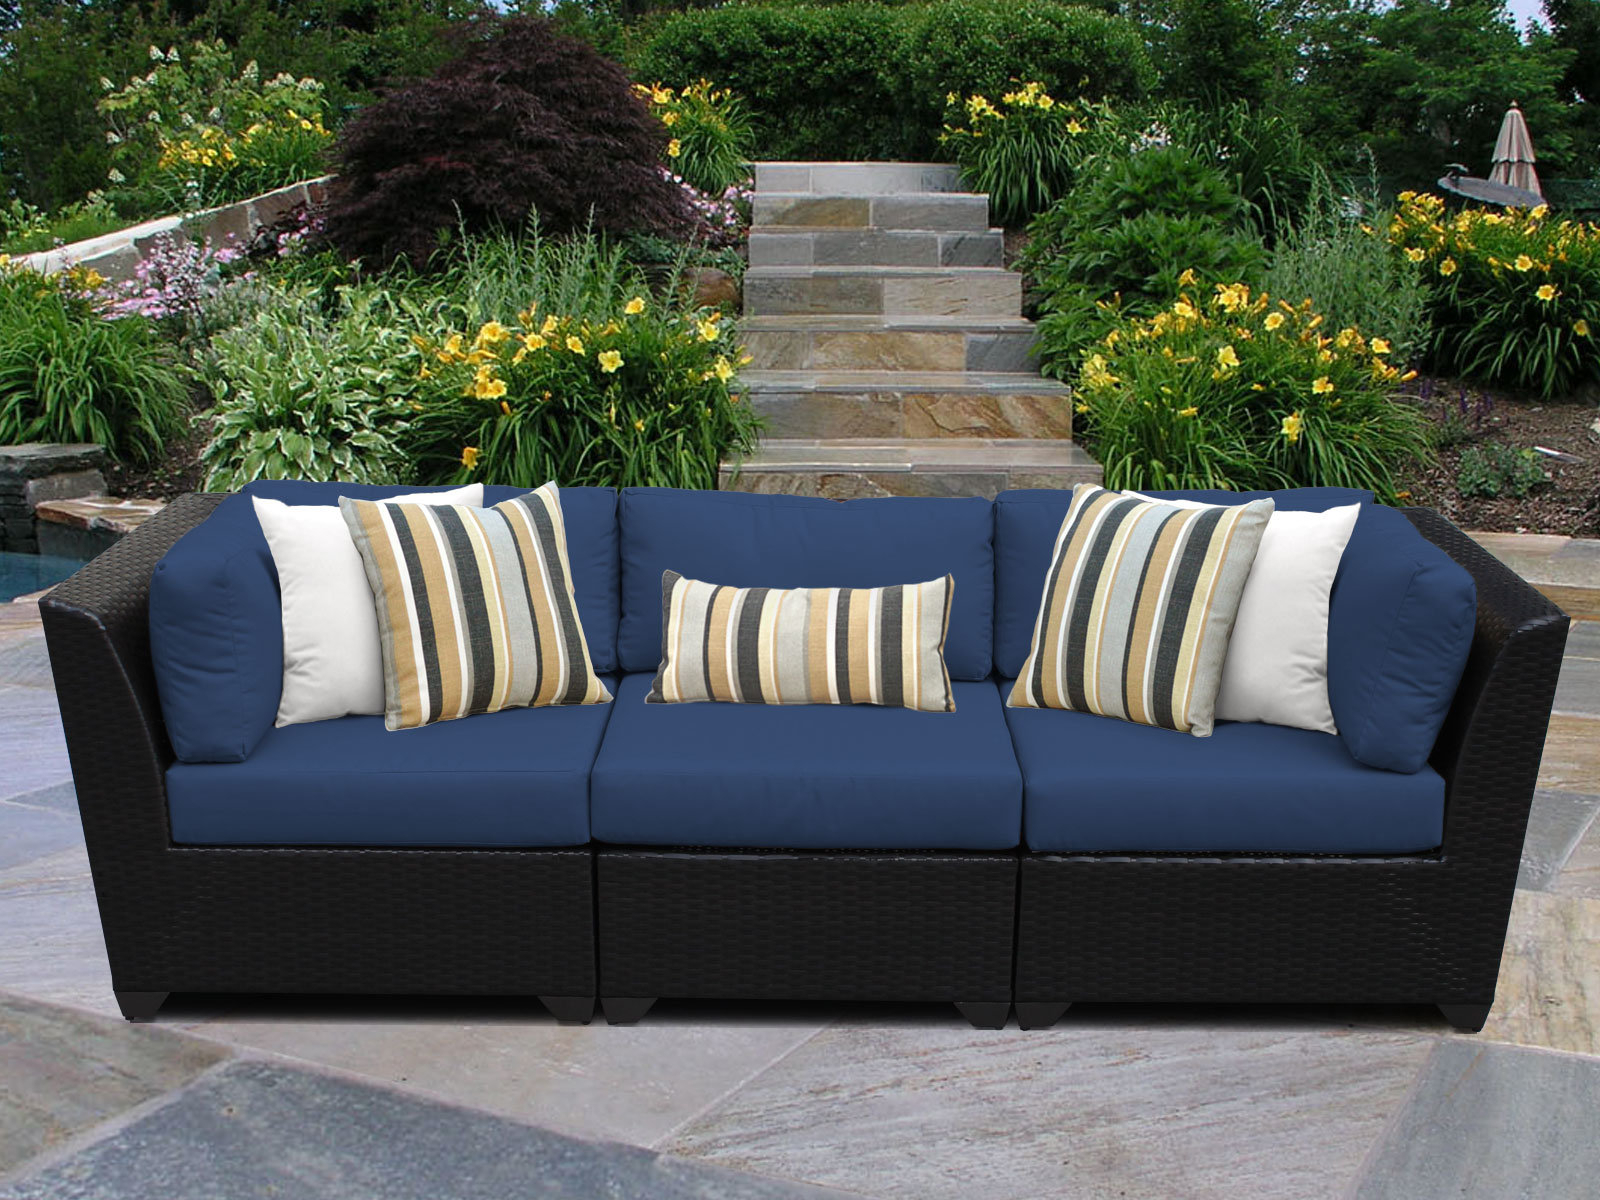 Most Current Camak Patio Sofas With Cushions In Camak Patio Sofa With Cushions (View 3 of 20)